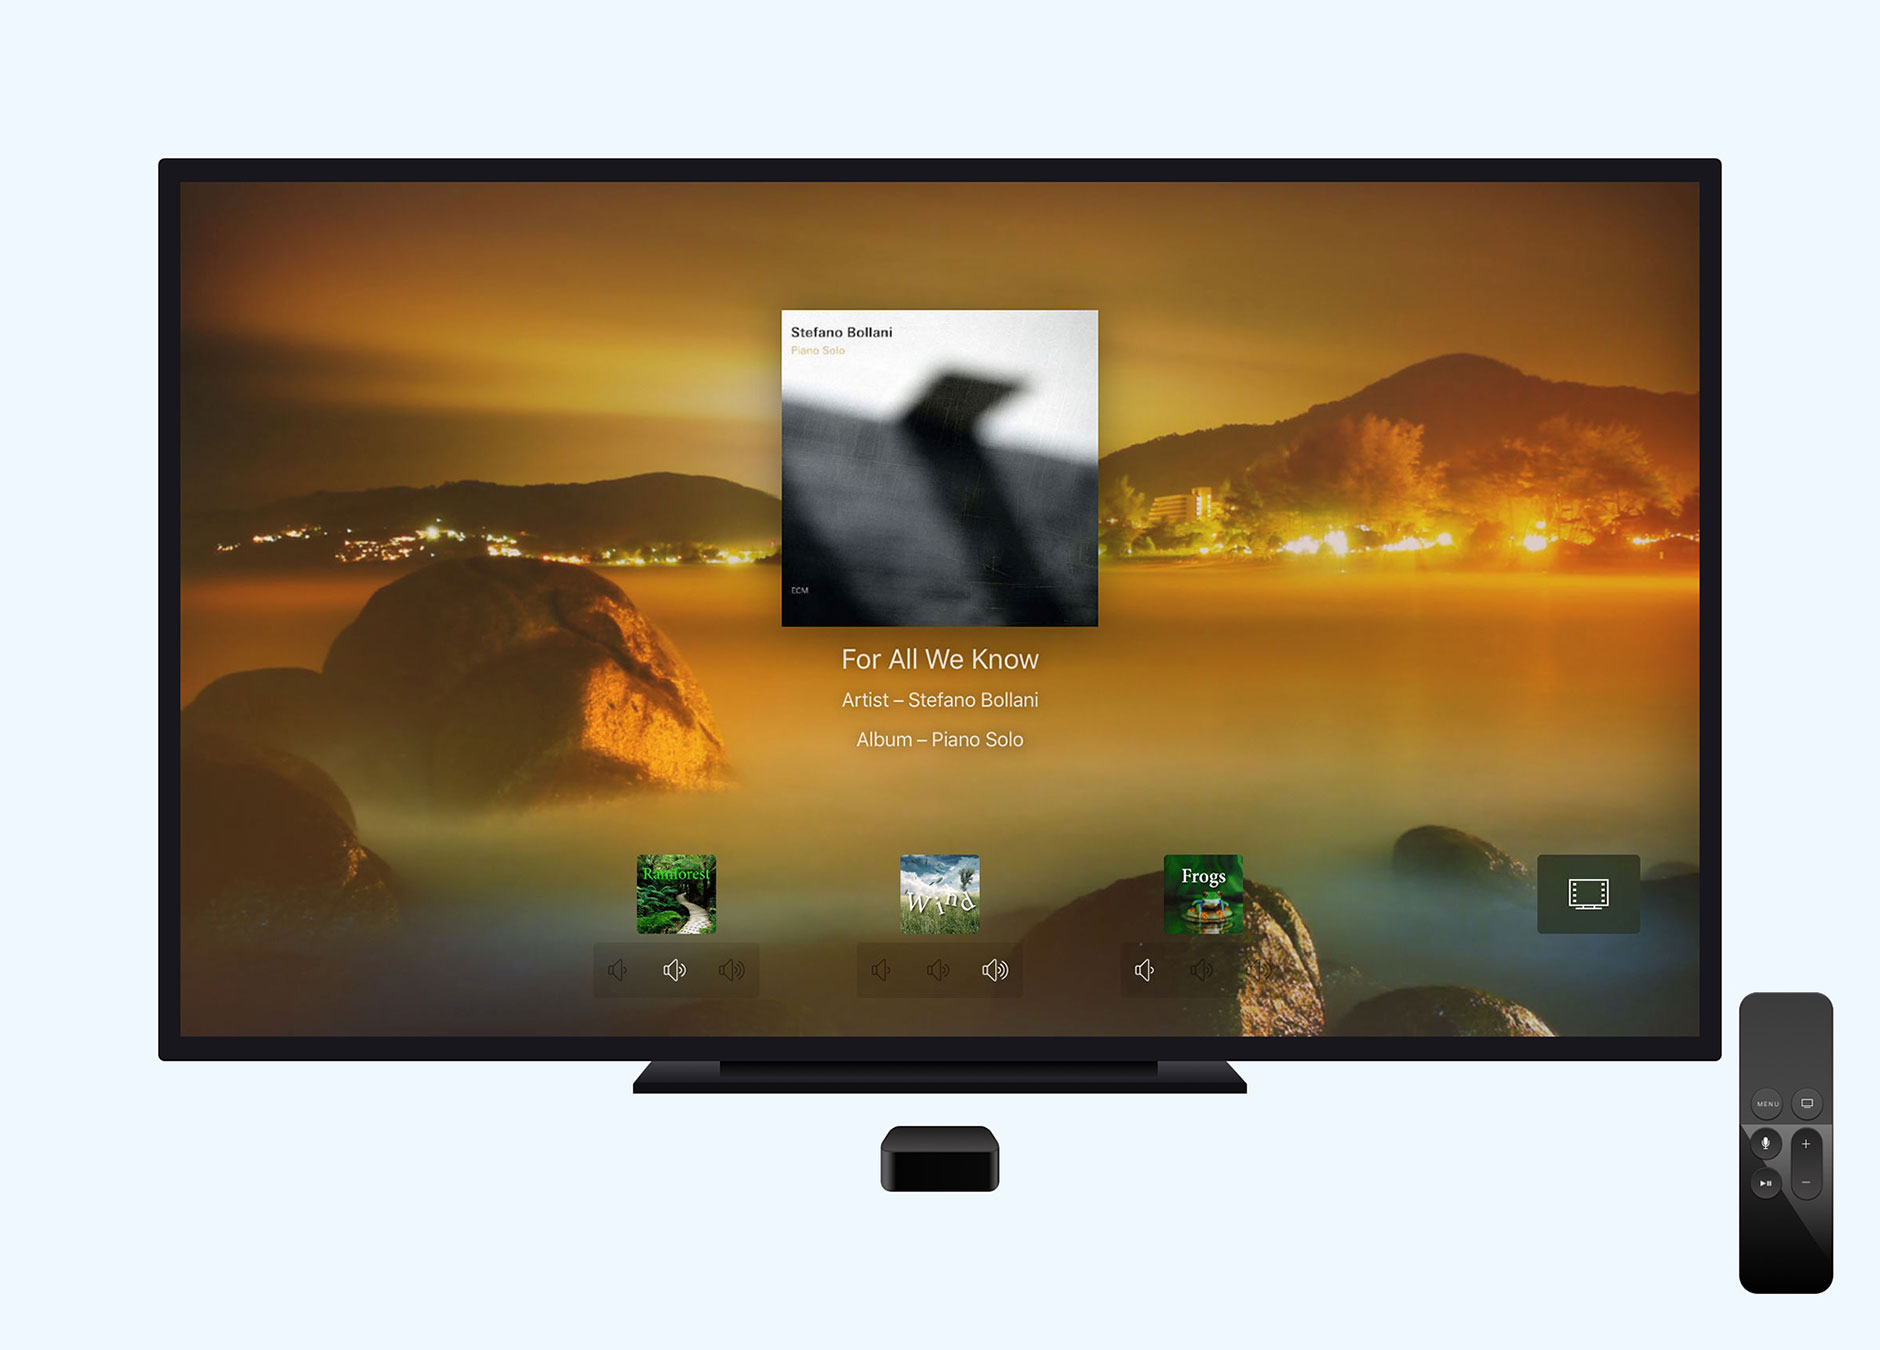 Calm Radio for Apple TV - Developed by Ben Dodson